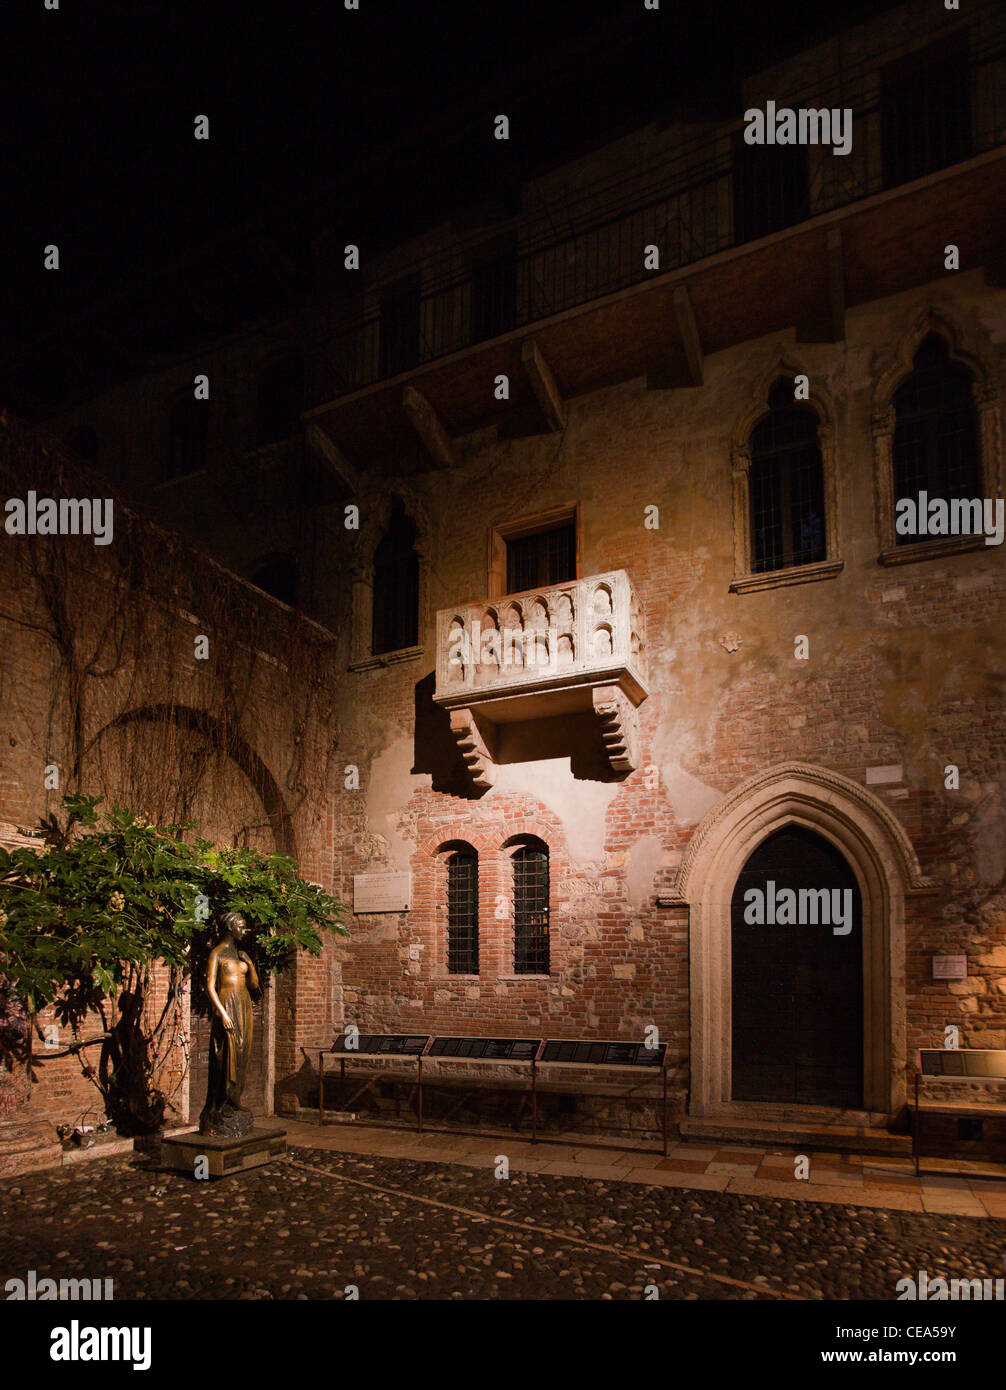 Romeo juliet 39 s balcony at night verona italy stock for Balcony at night